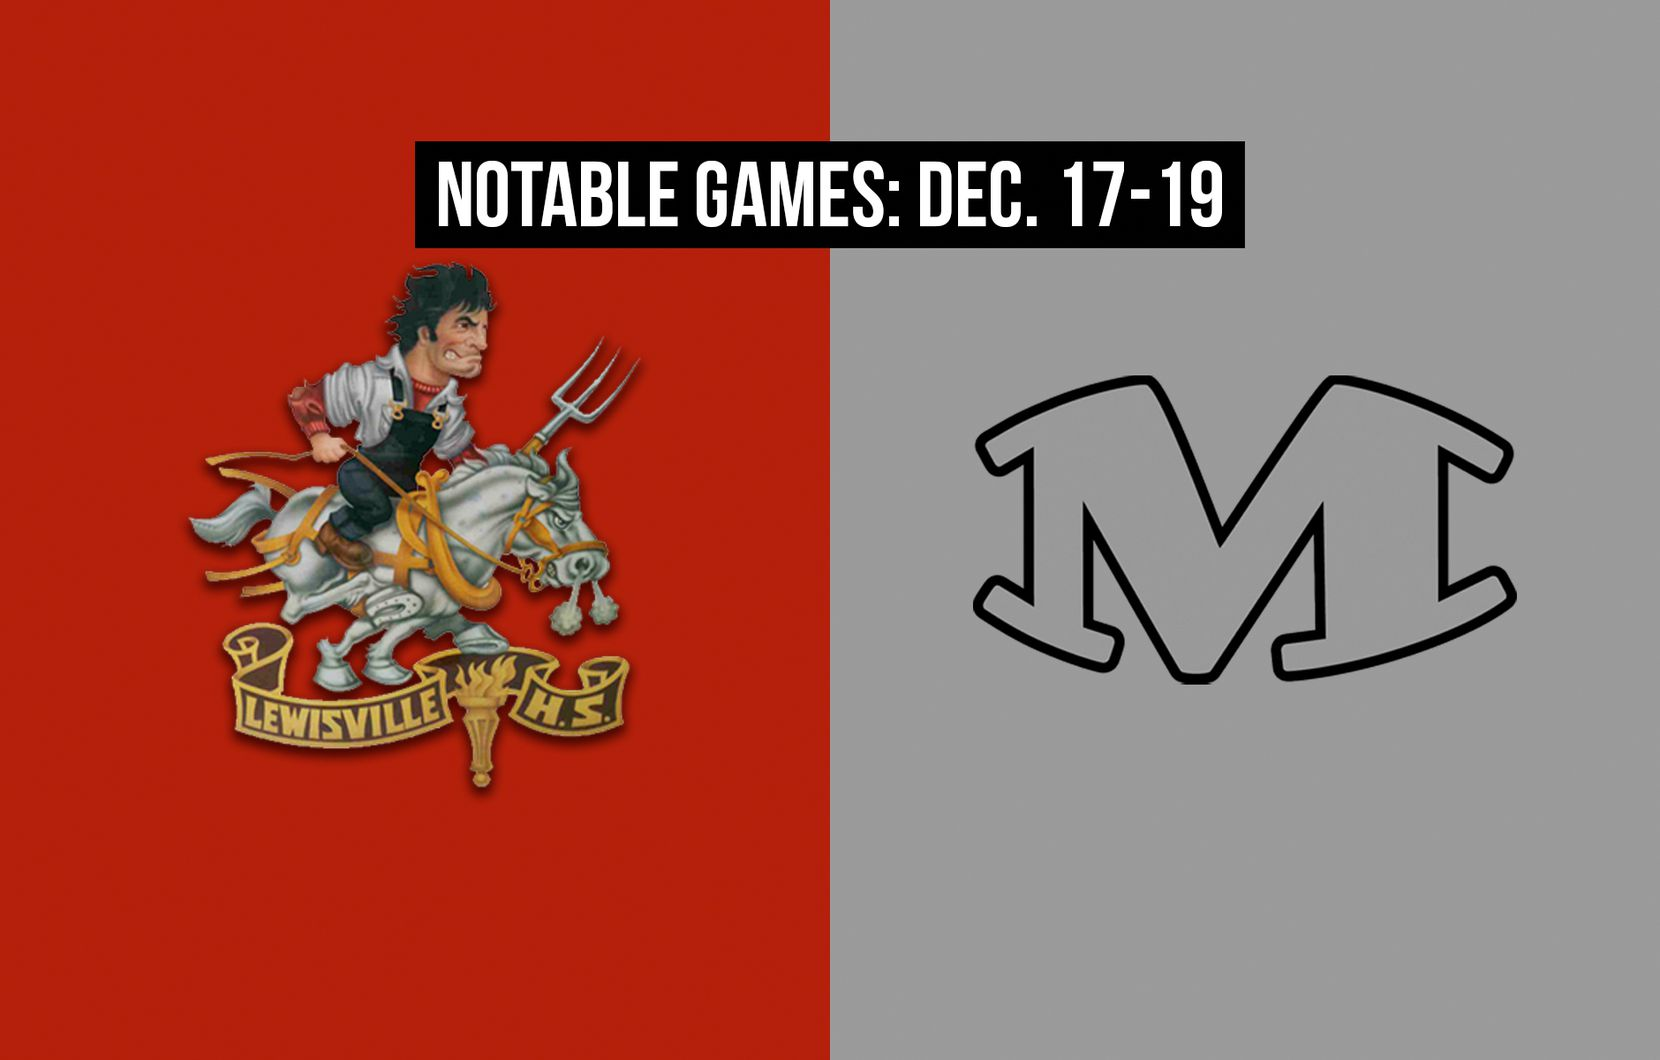 Notable games for the week of Dec. 17-19 of the 2020 season: Lewisville vs. Arlington Martin.